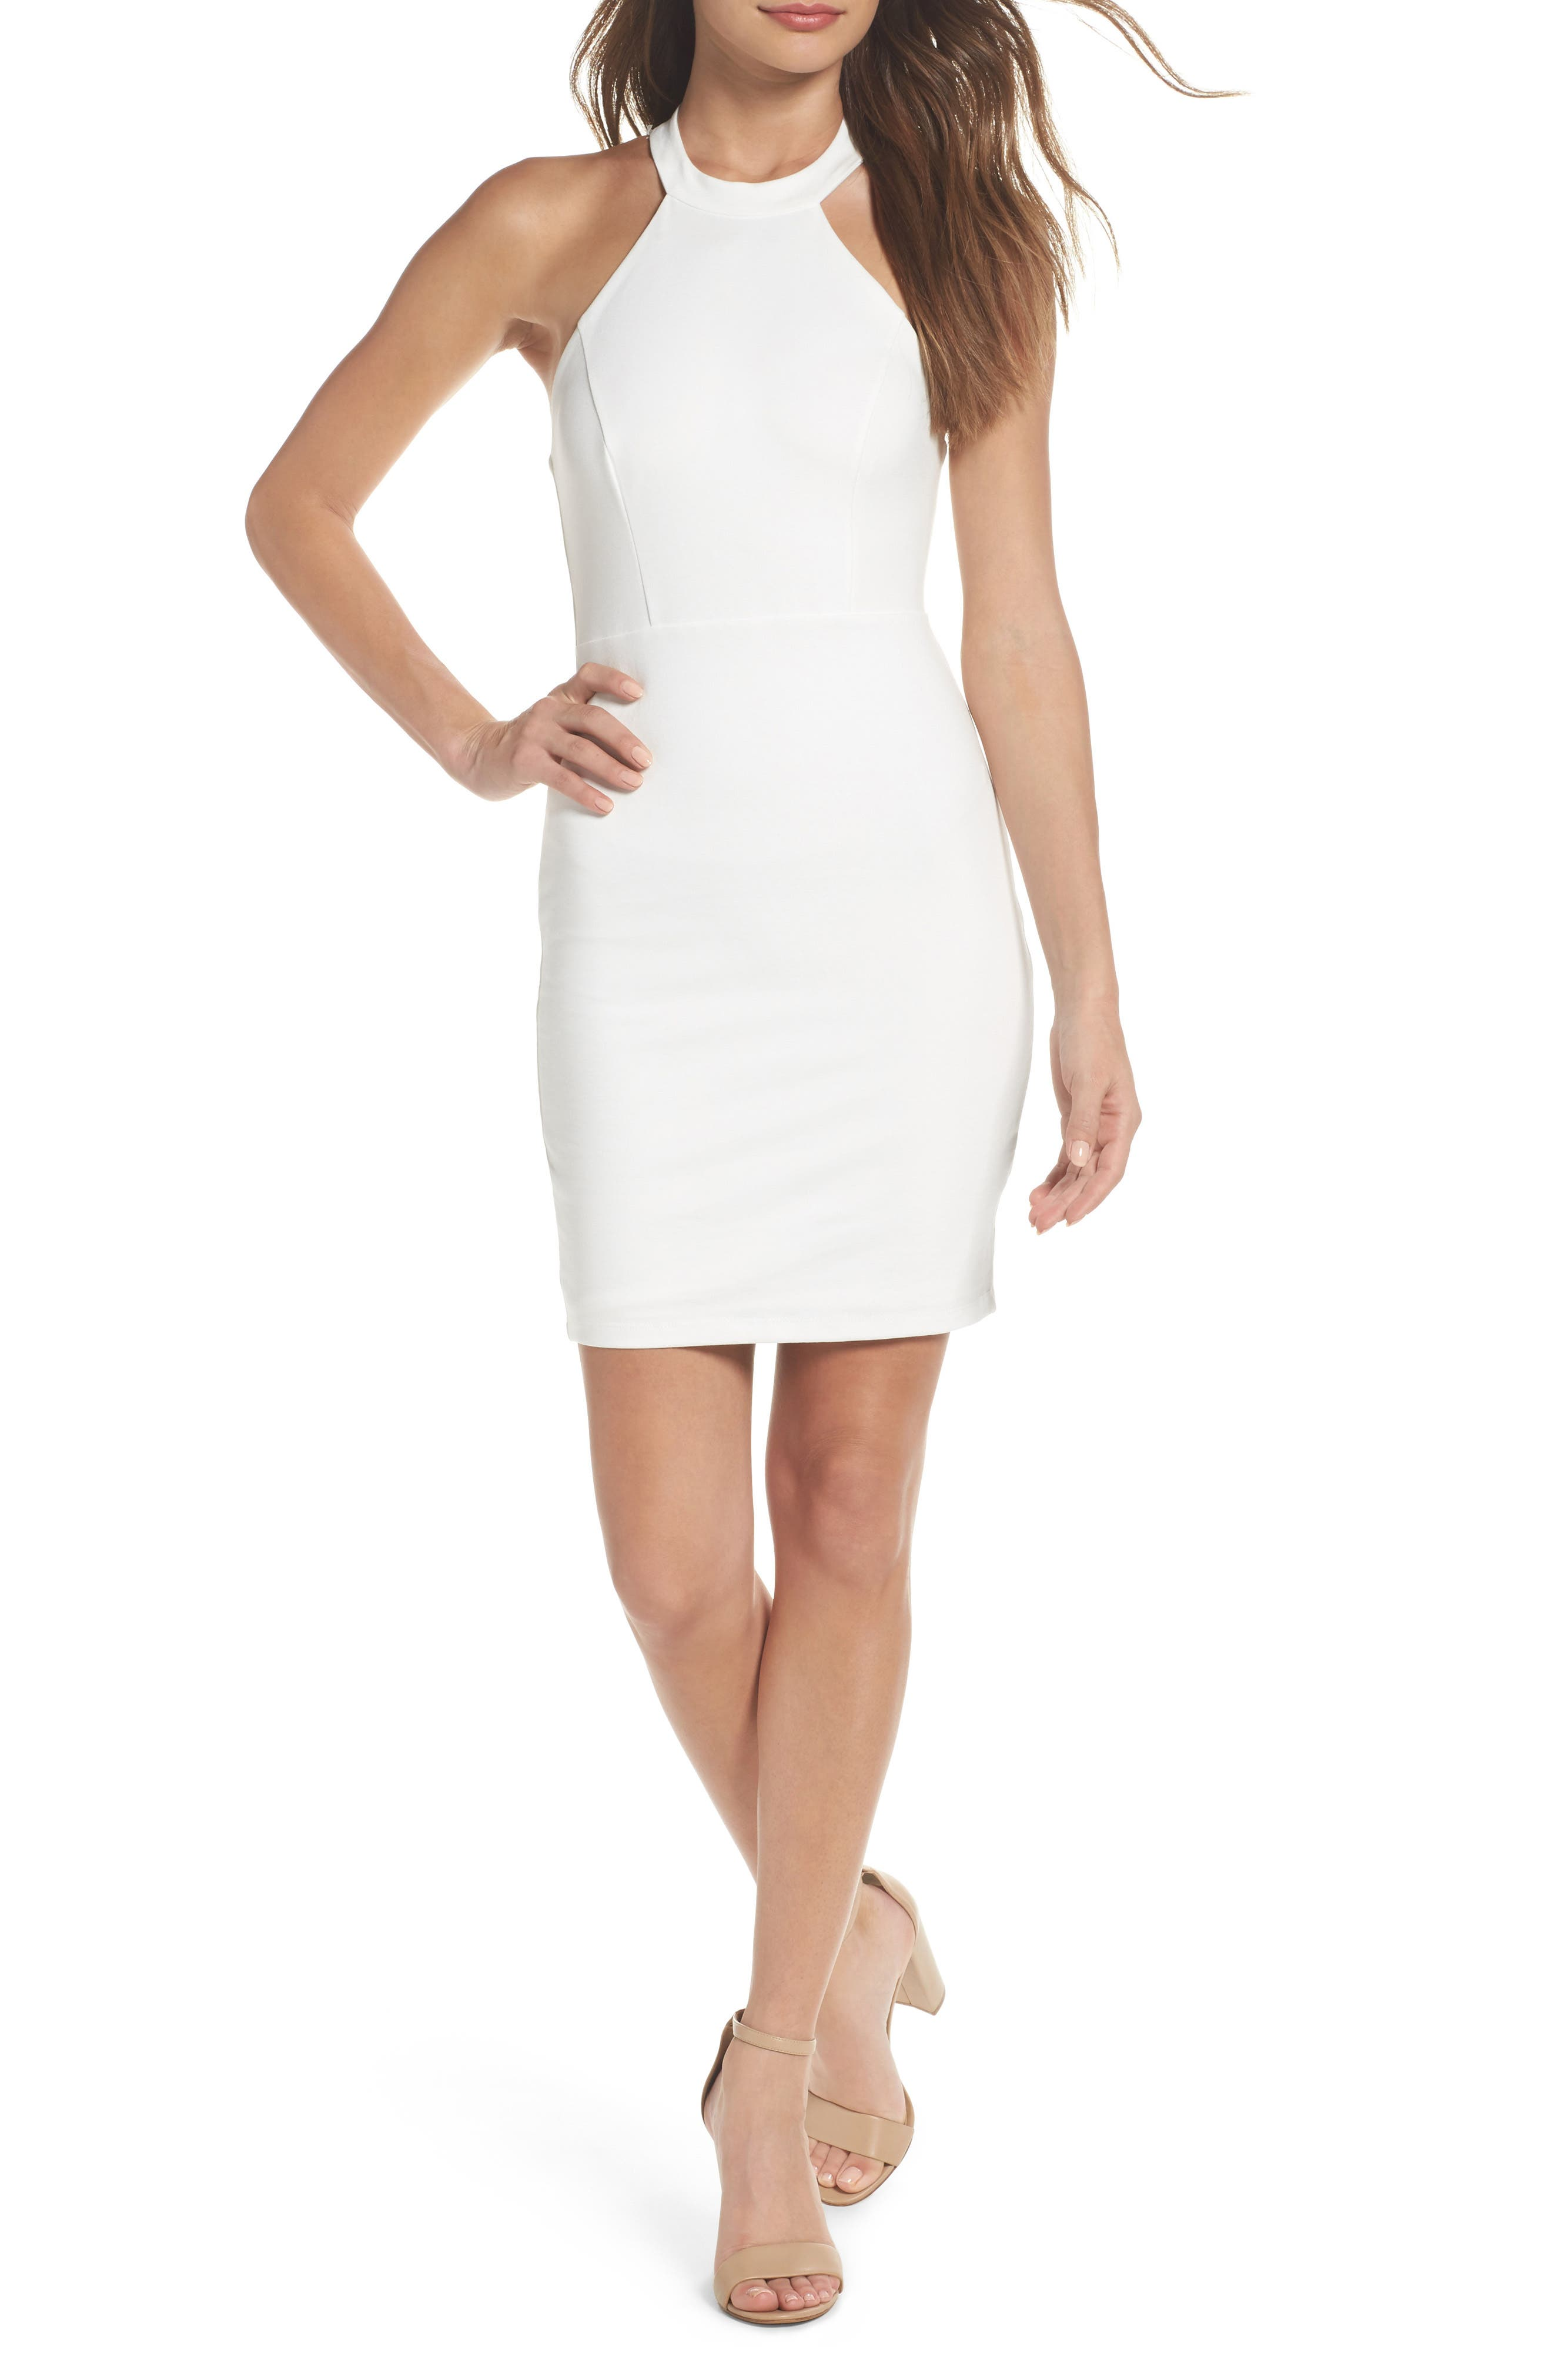 Lulus Endlessly Alluring Lace Trim Body Con Dress